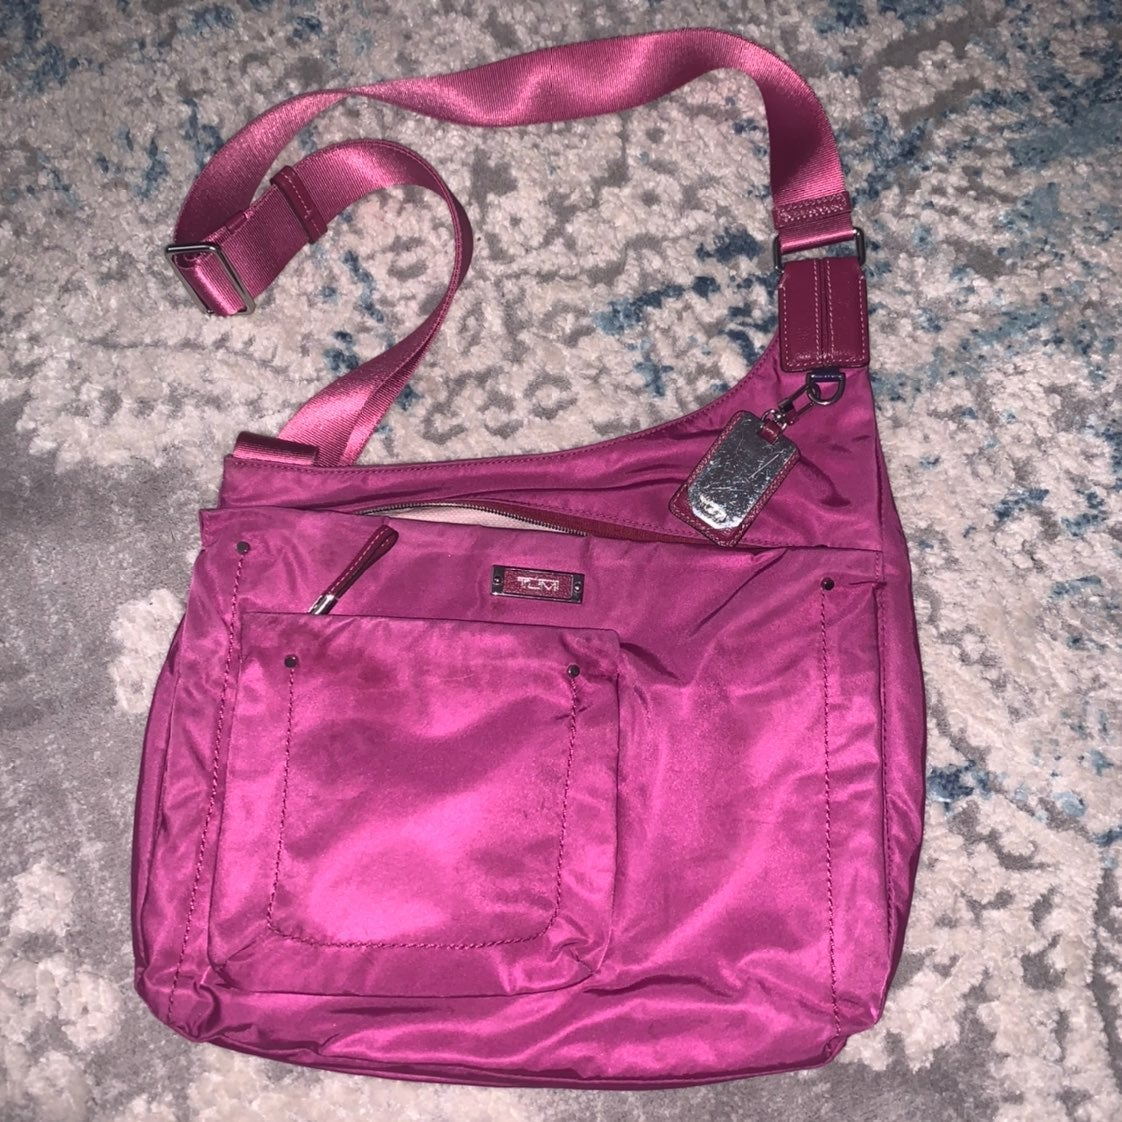 Tumi Voyager Nylon Crossbody Bag